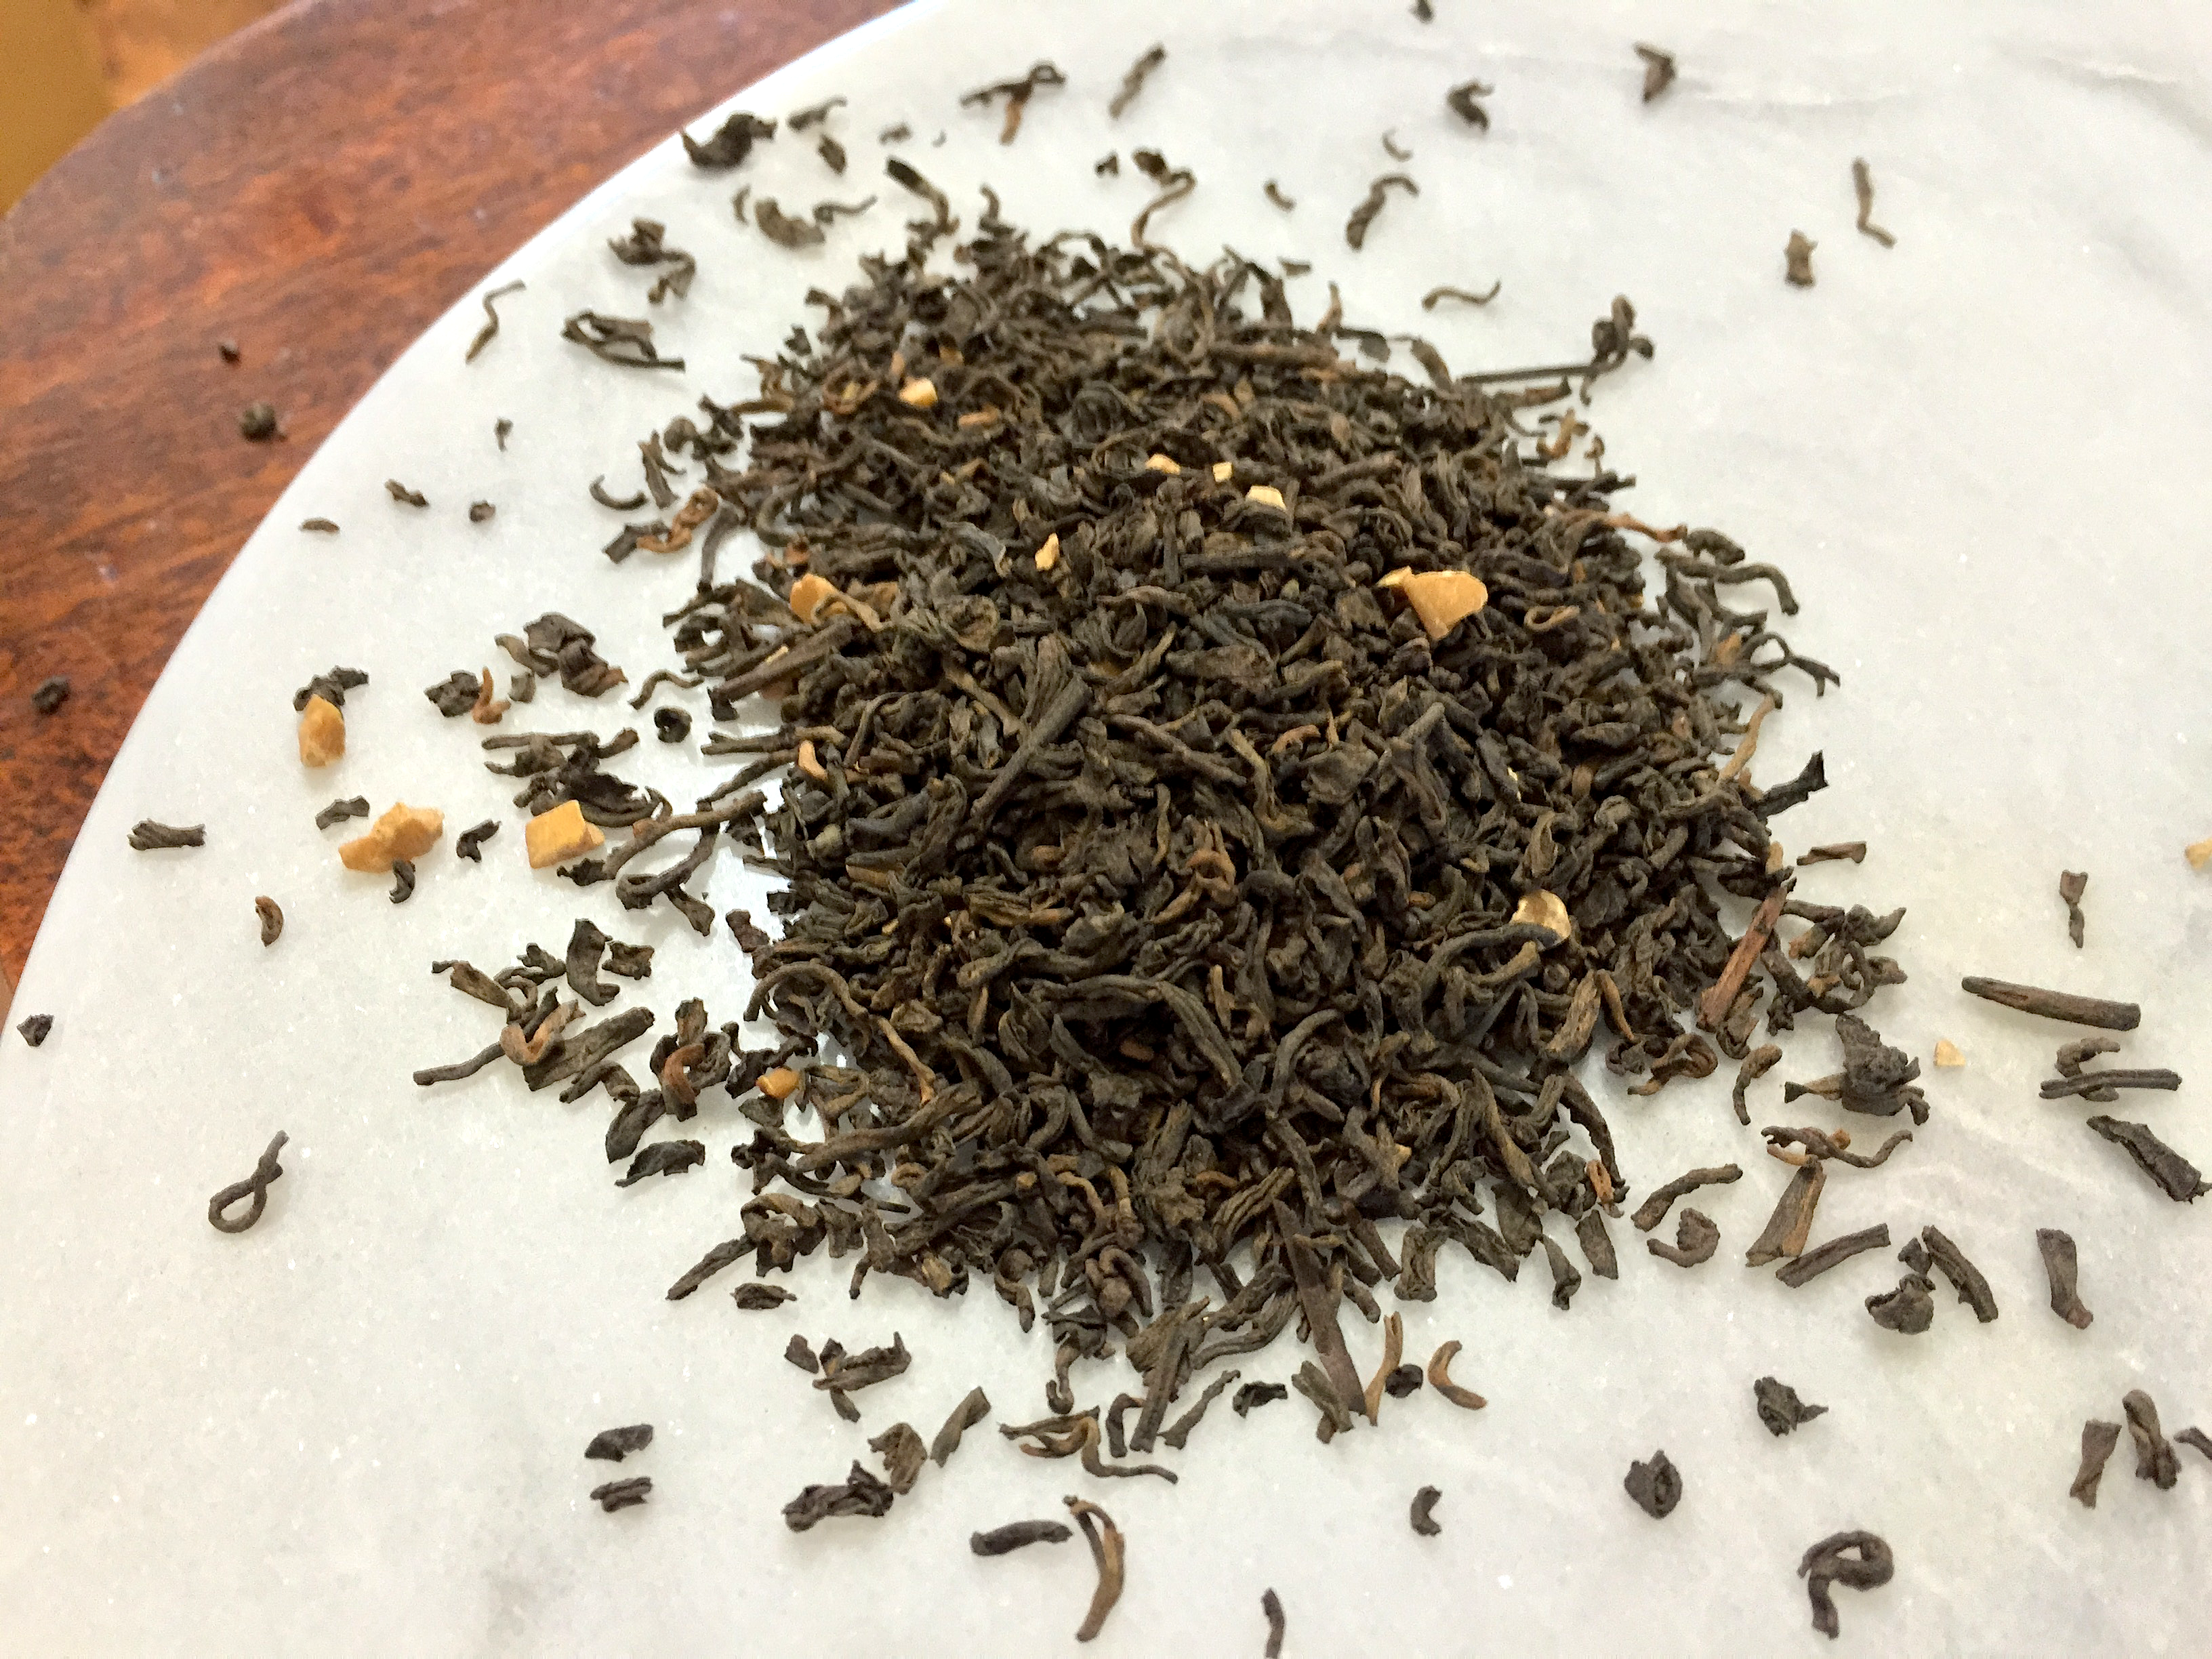 Caramel Pu-erh (ChocolaTea): loose leaf by Jocilyn Mors is licensed under a Creative Commons Attribution-ShareAlike 4.0 International License.